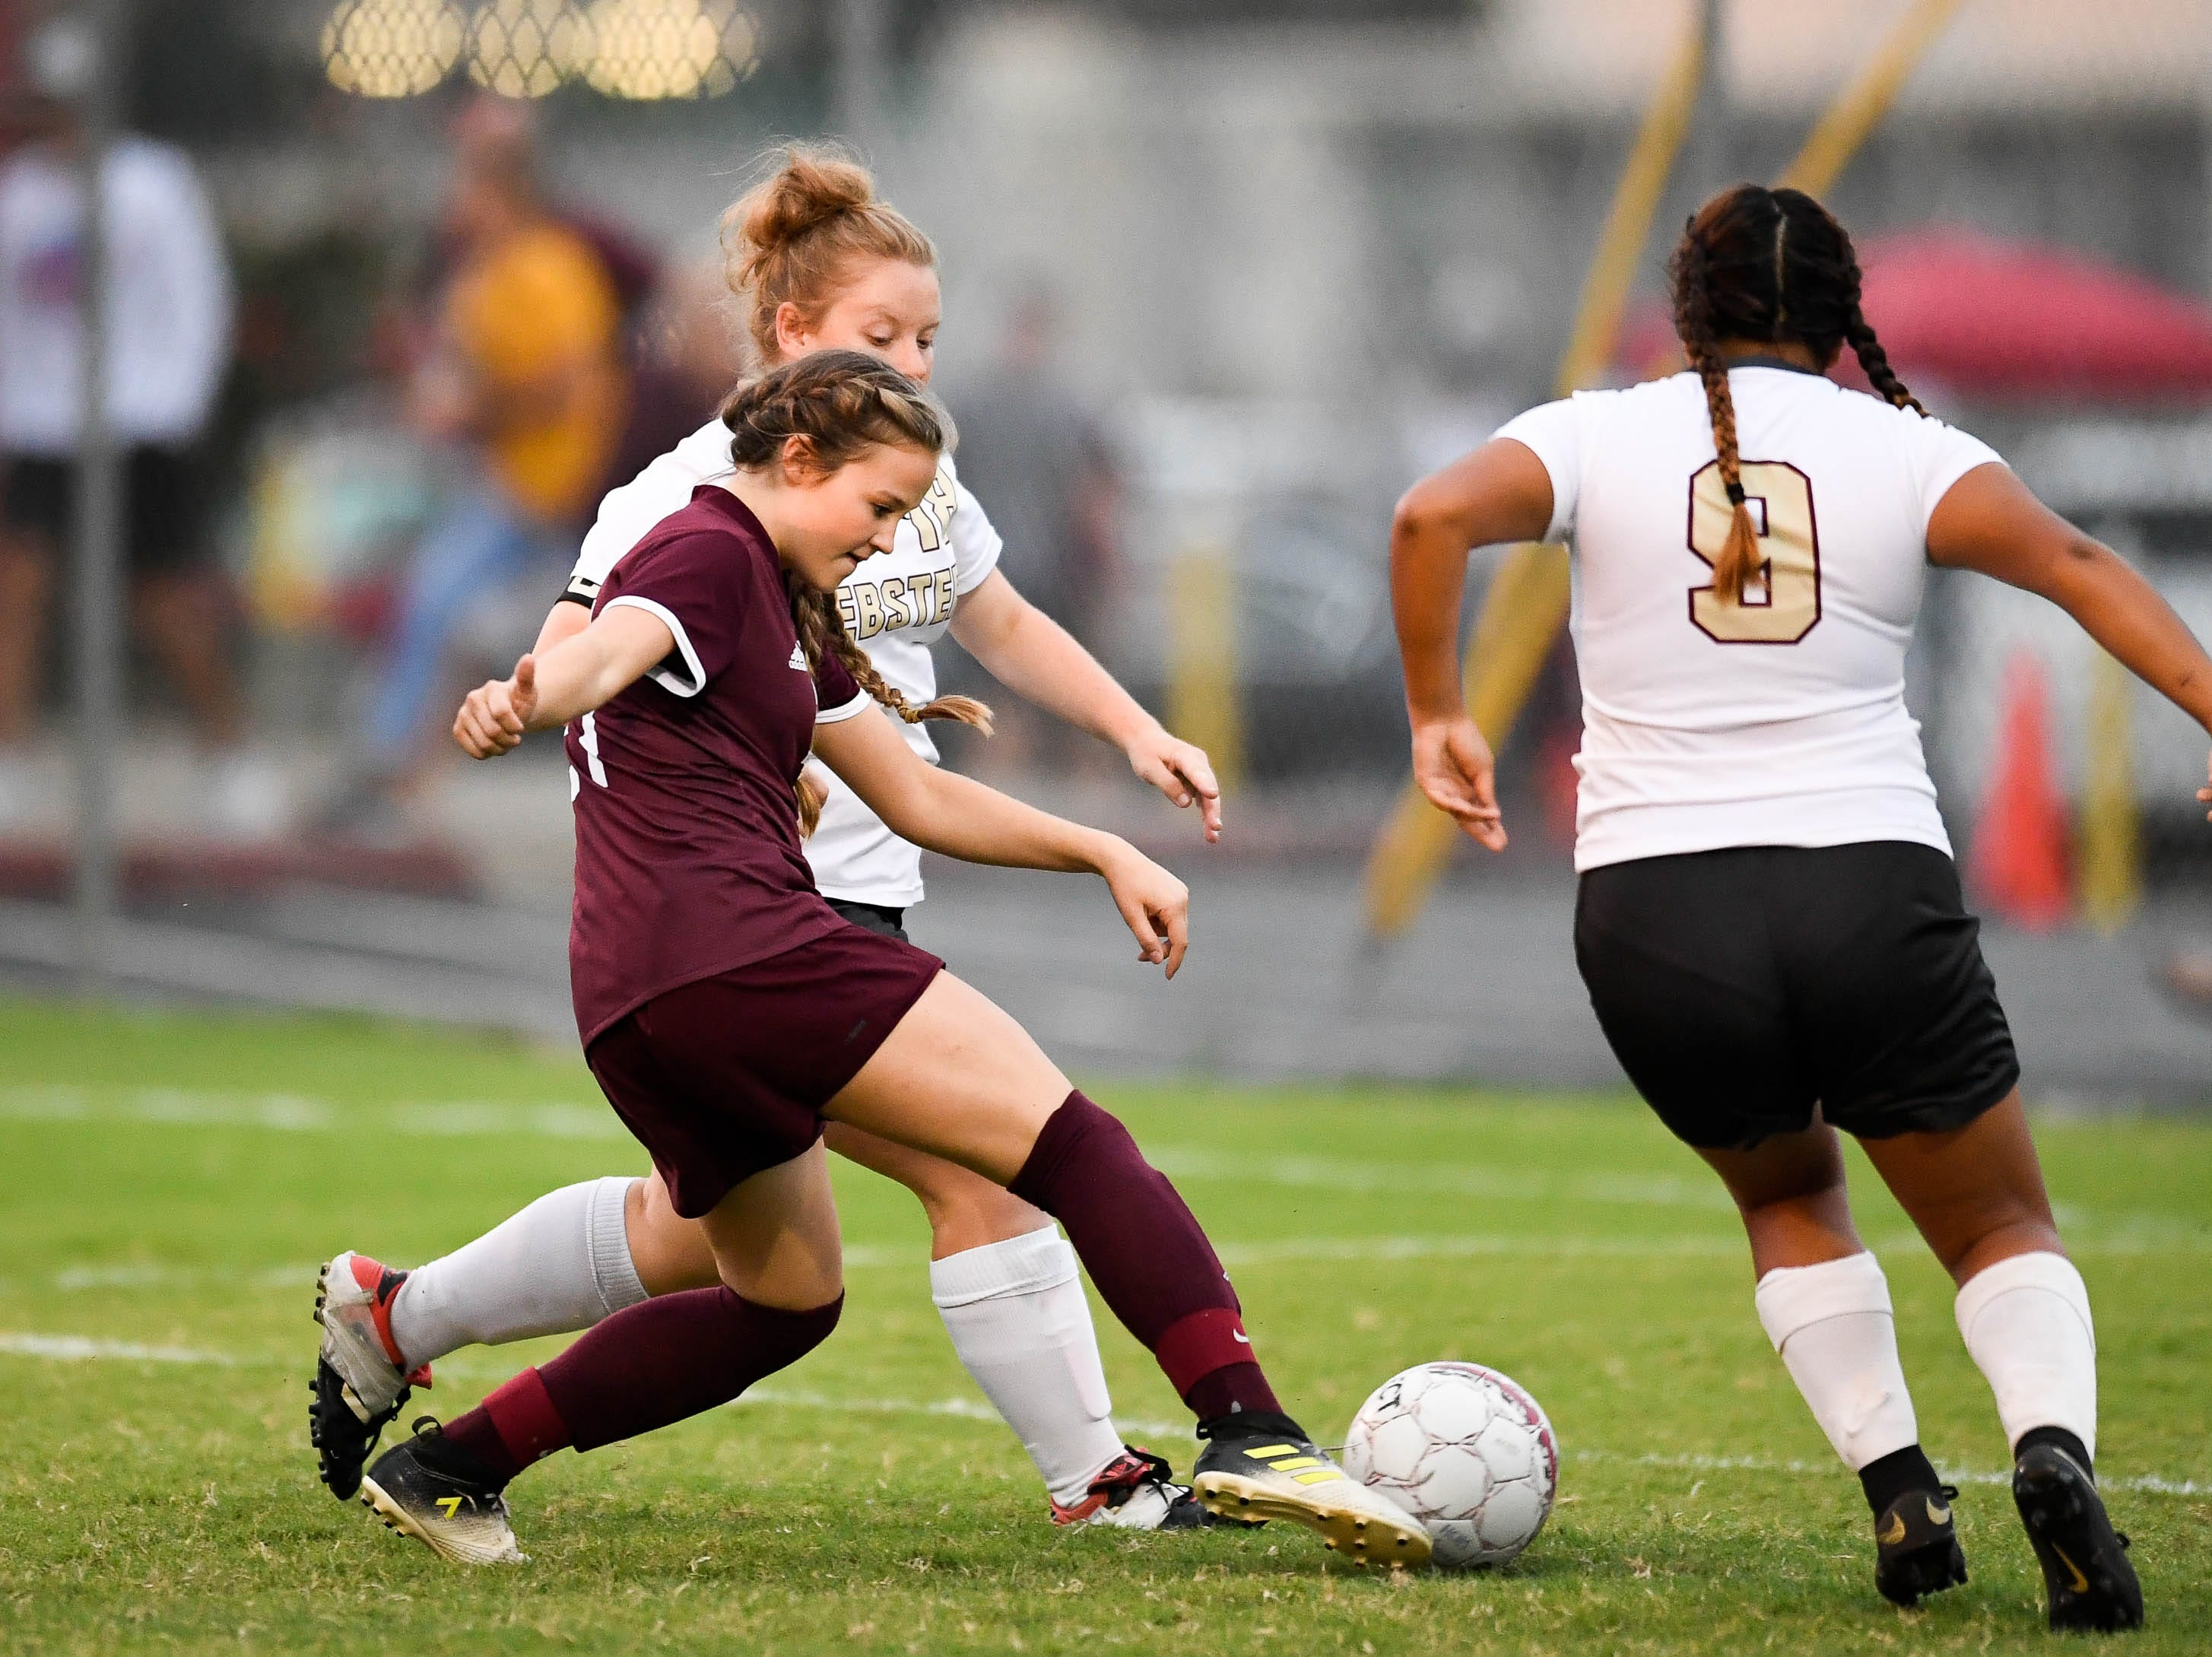 Henderson's Cecilla Palummo (21) drives against Webster's Madelyn Hackney (18) as the Henderson County Lady Colonels play the Webster County Lady Trojans in the Sixth District Soccer Tournament at Colonel Field Wednesdayt, October 10, 2018.